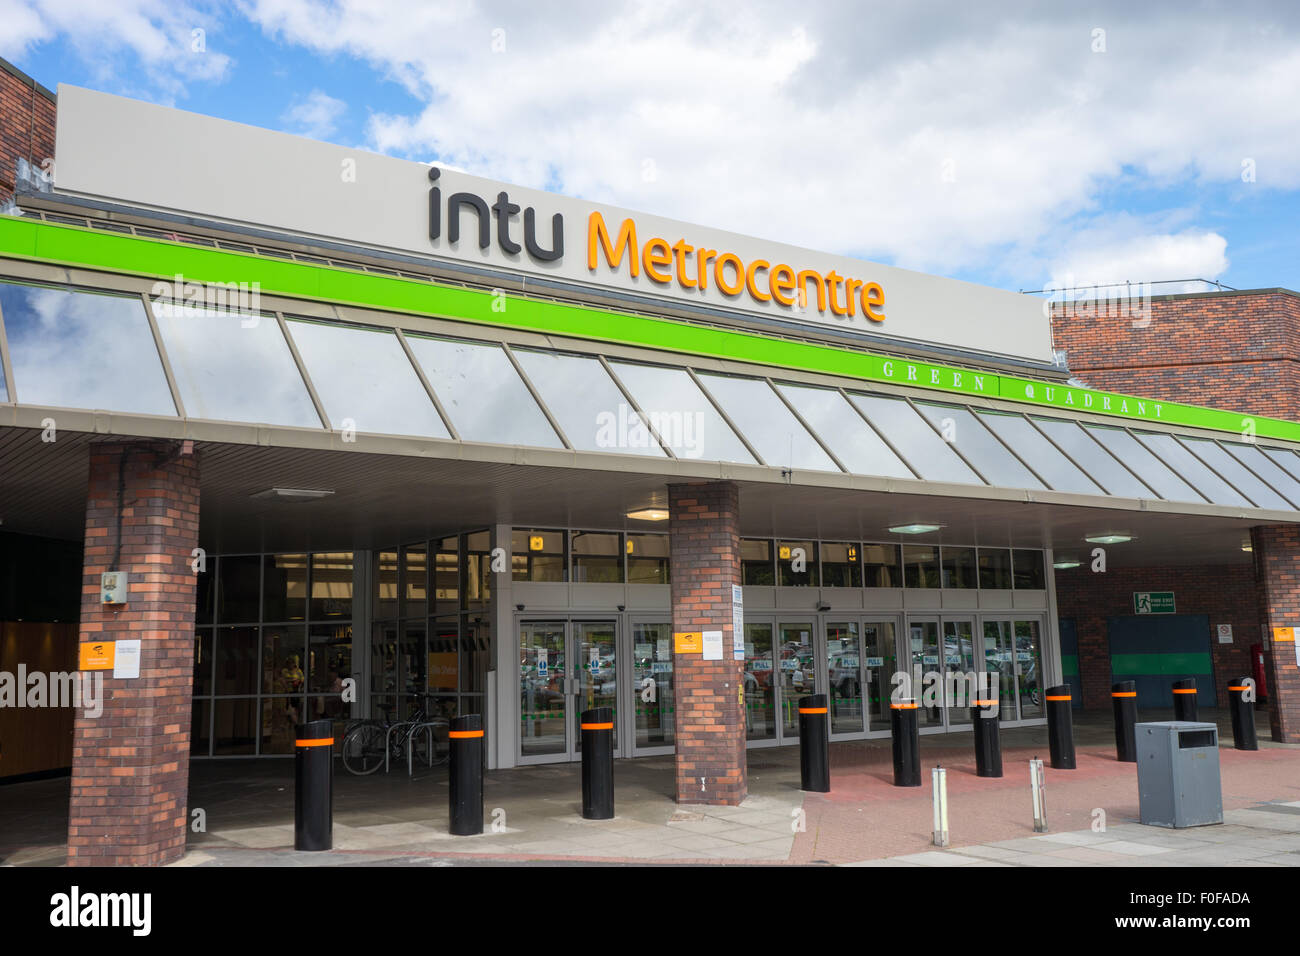 Green Mall Entrance Of The Intu Metrocentre Also Known As